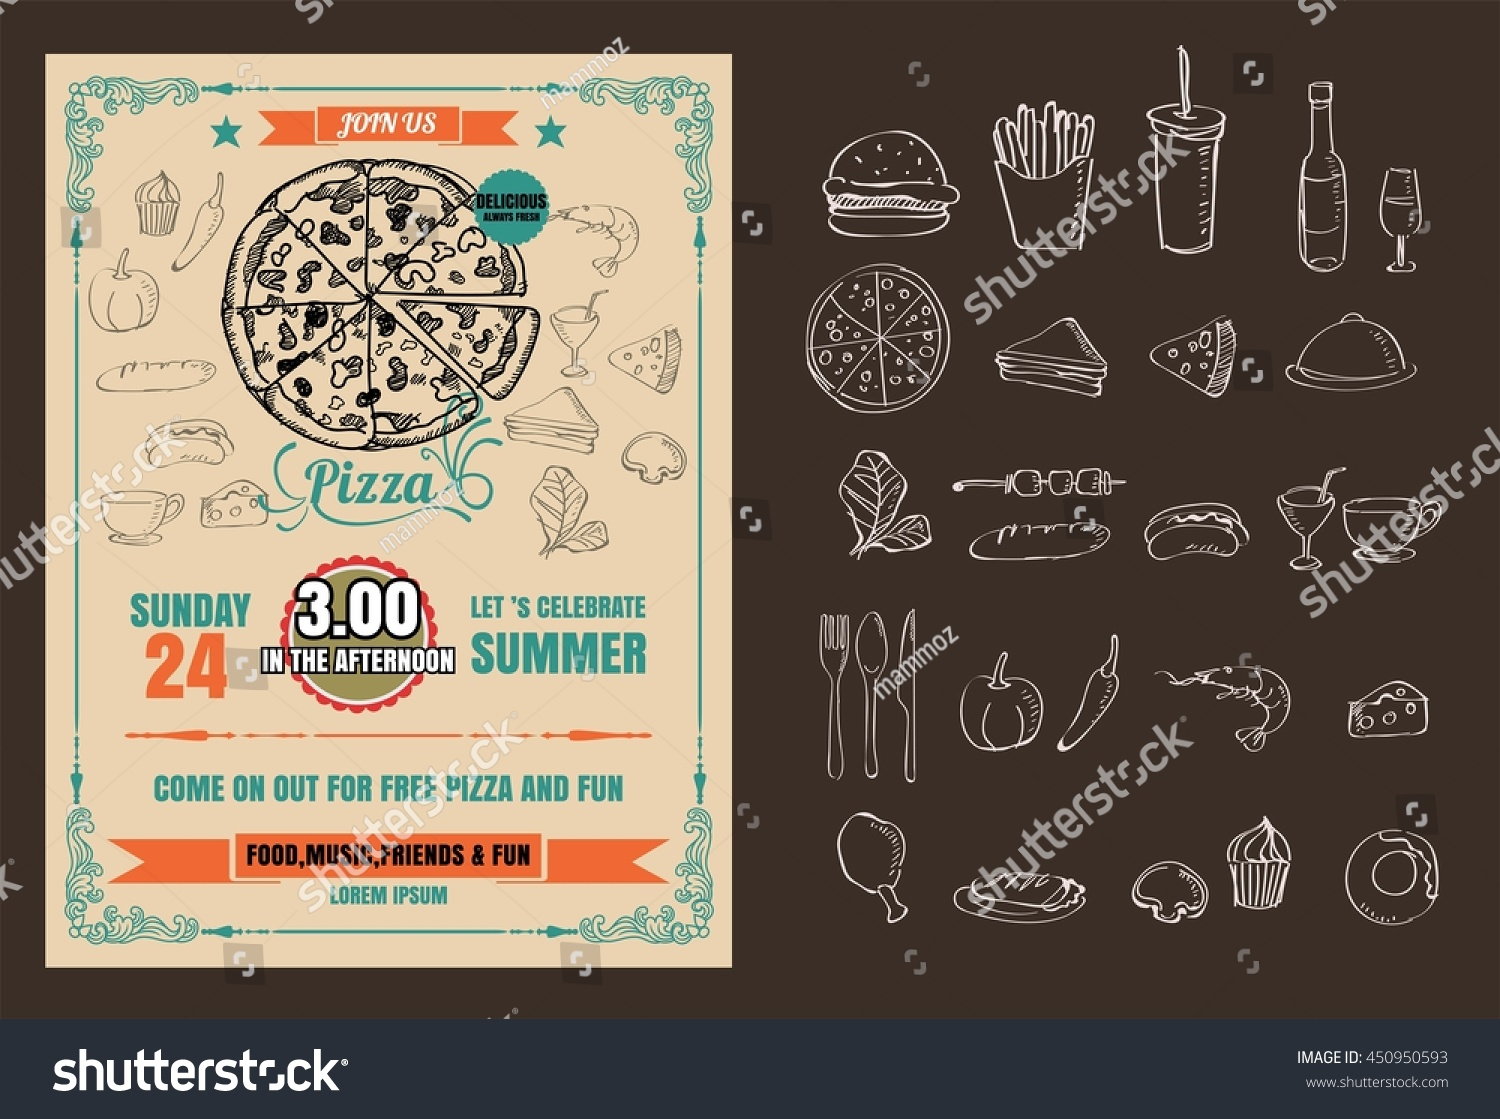 Vintage Vector Pizza Party Flyer Invitation Template Design 450950593